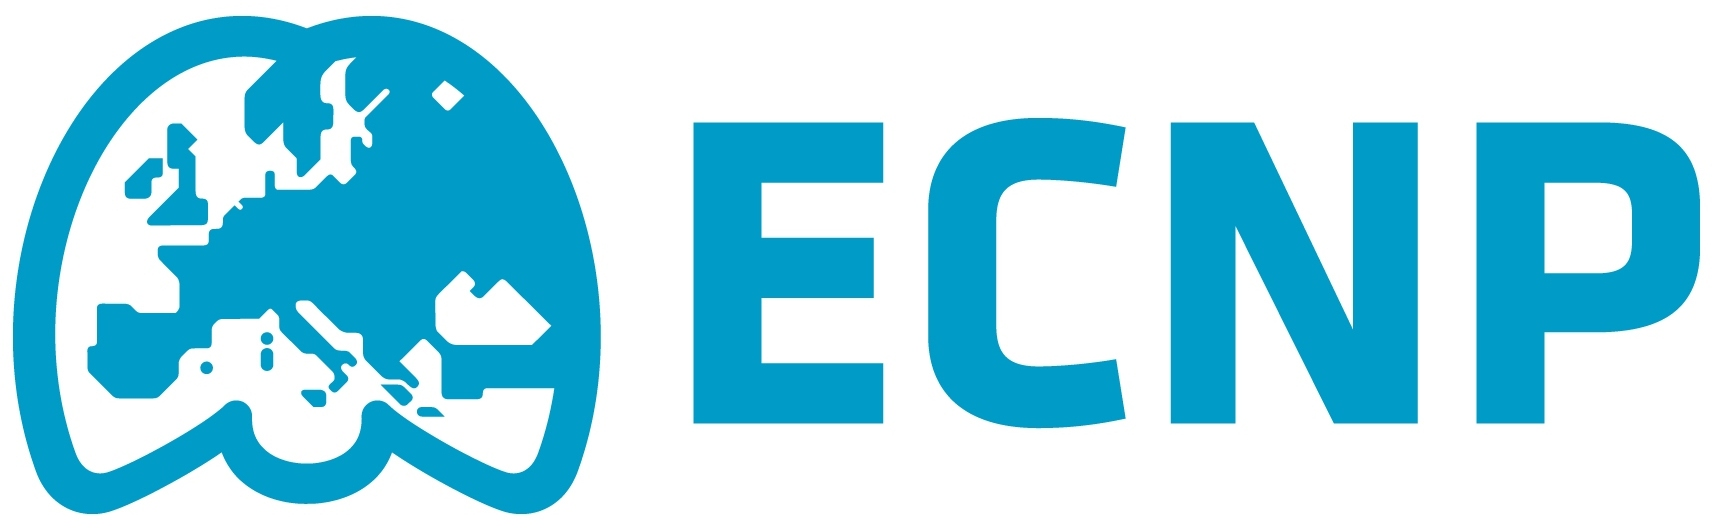 logo for European College of Neuropsychopharmacology